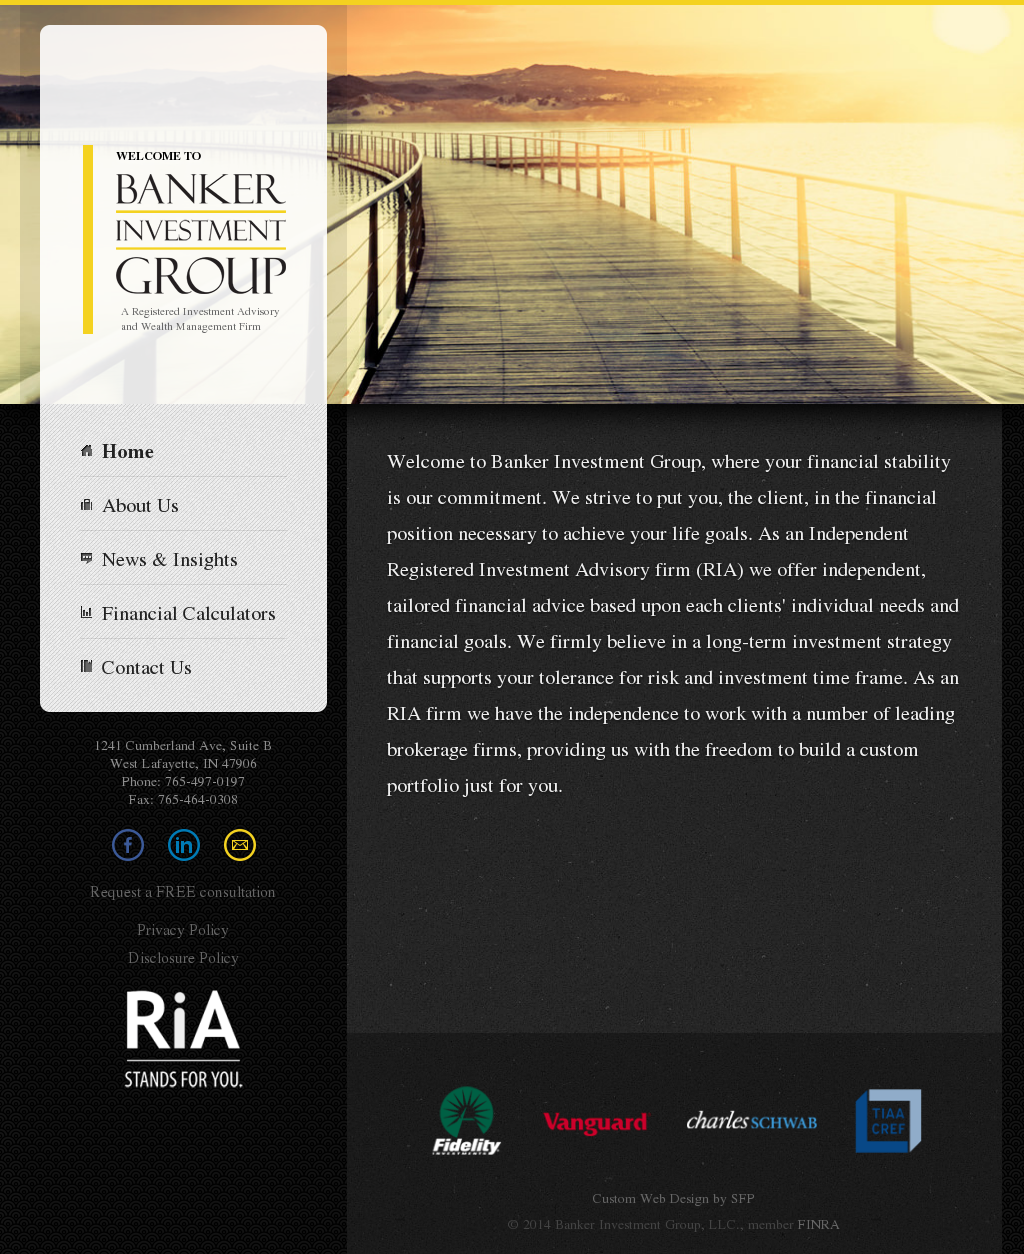 Banker investment group portfolio management and investment decision mba online